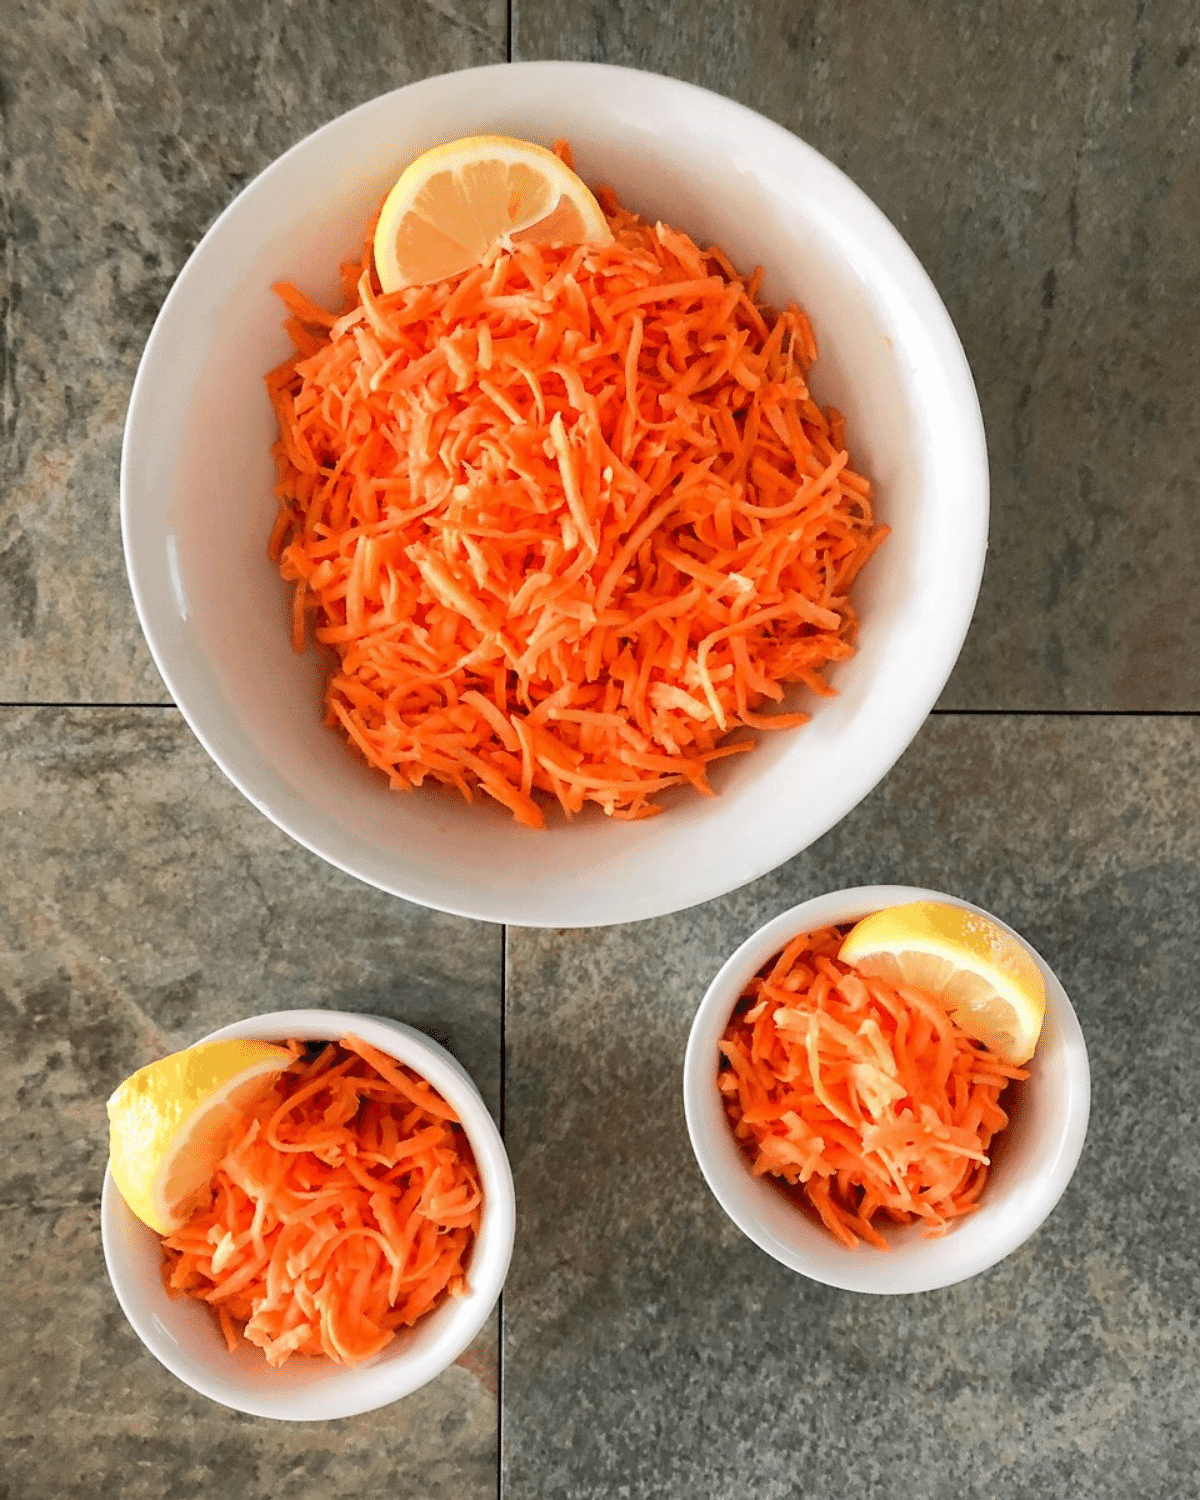 Homemade cold carrot salad served in 2 small serving dishes and 1 large serving bowl, all served with lemon wedges